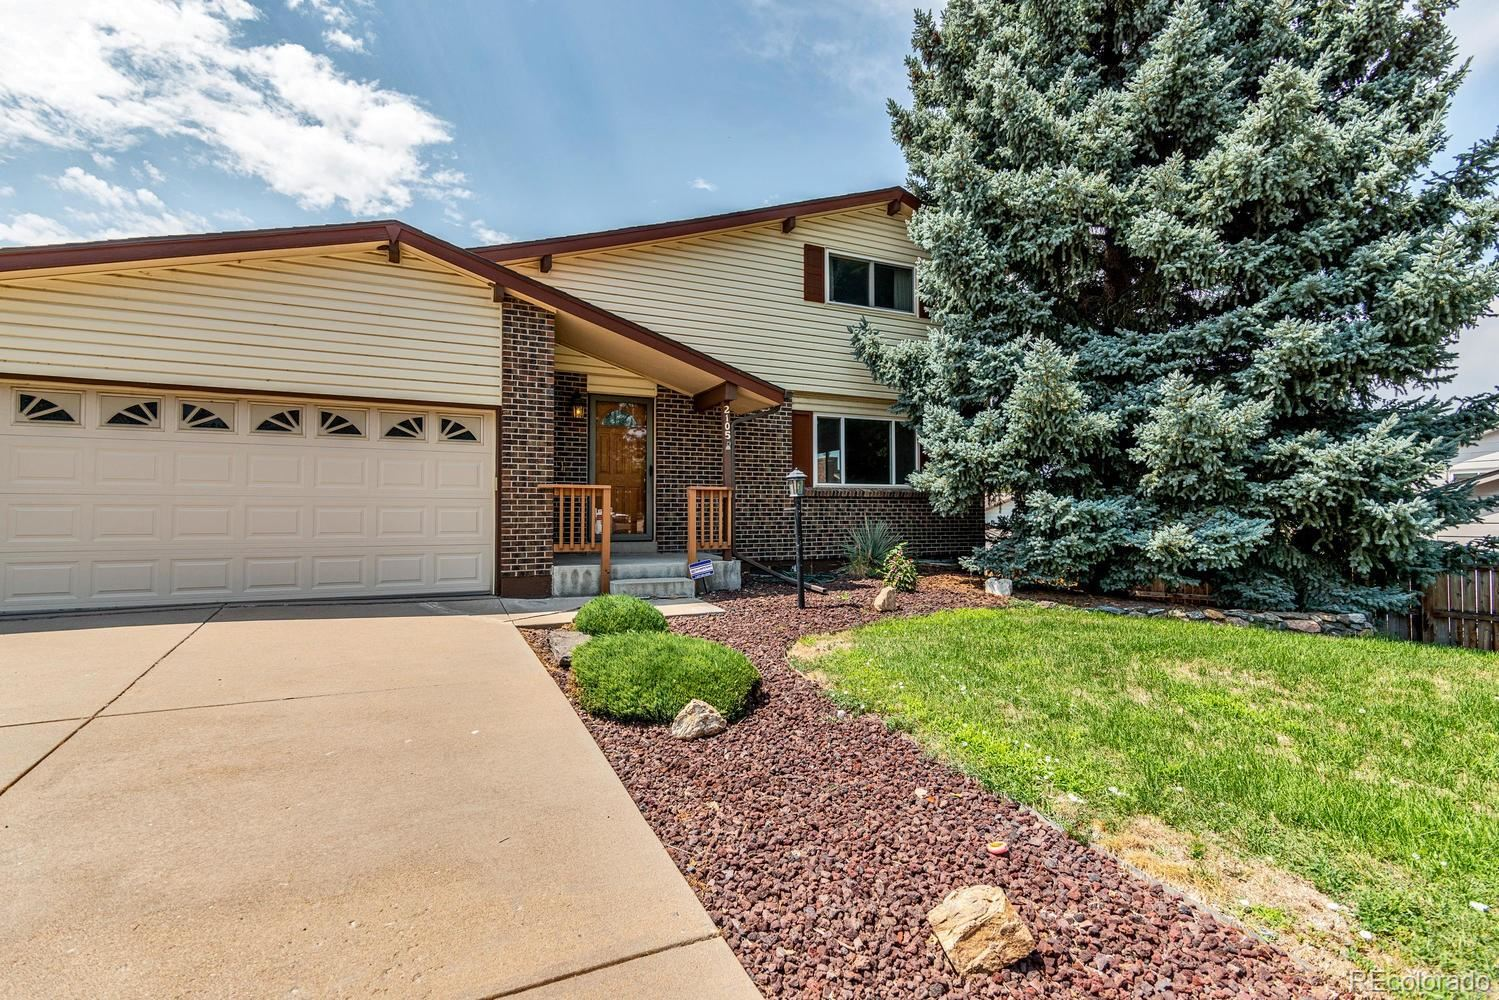 2105 S Nucla Way, Aurora, CO 80013 - #: 6294694